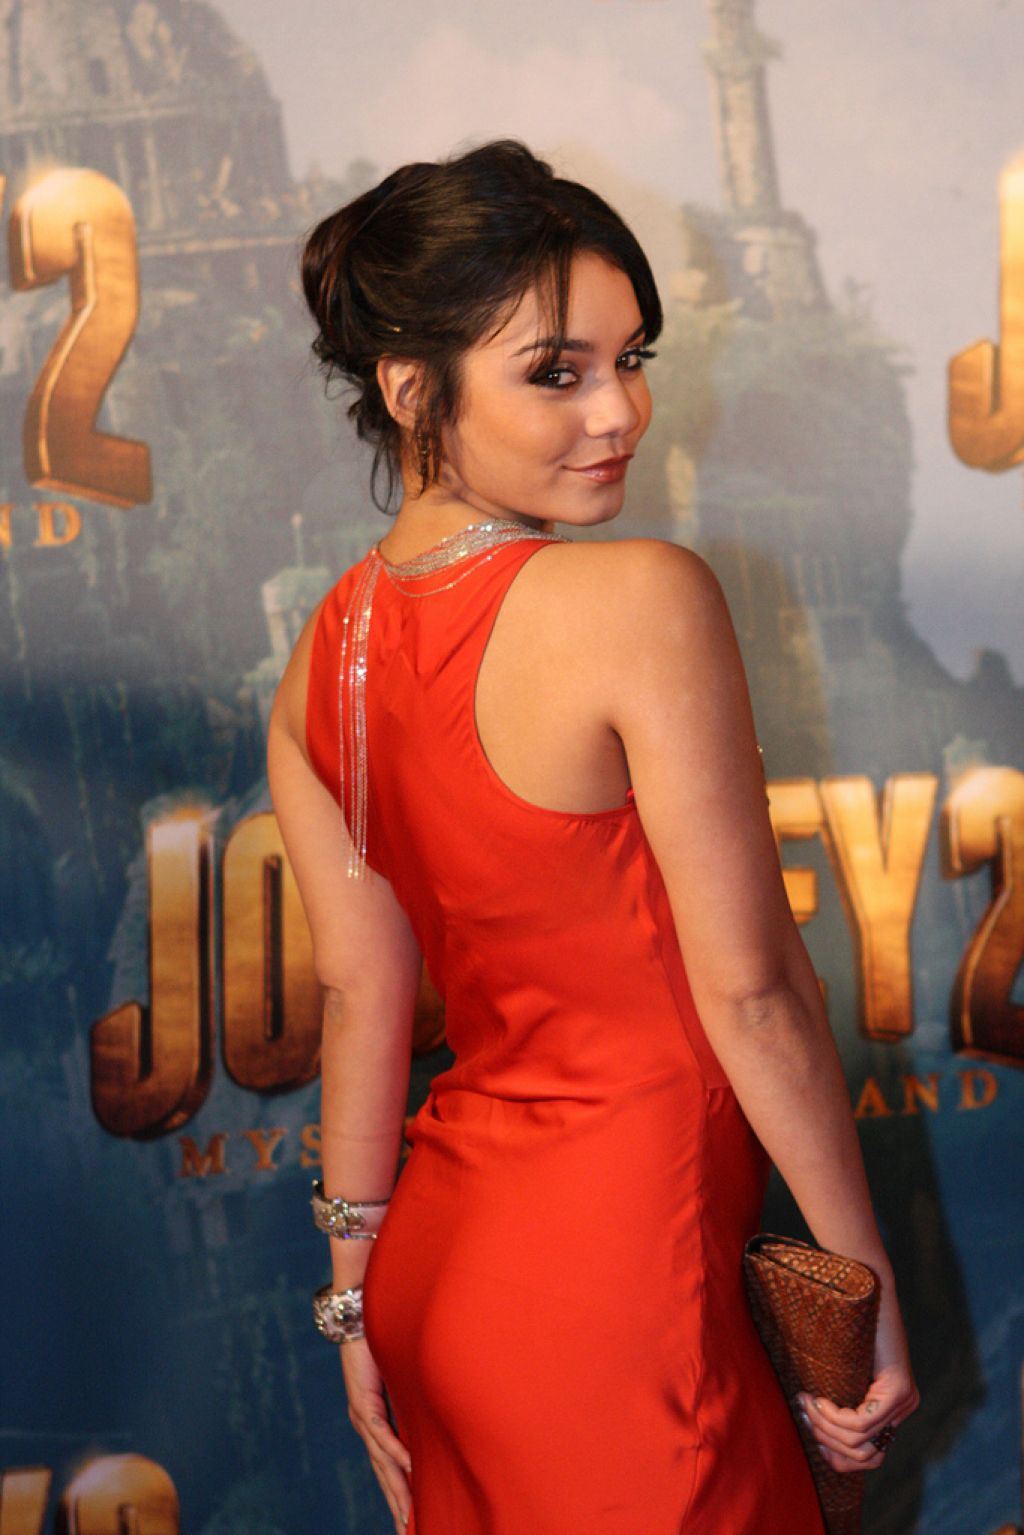 vanessa hudgens1 Vanessa Hudgens Biography and Filmography